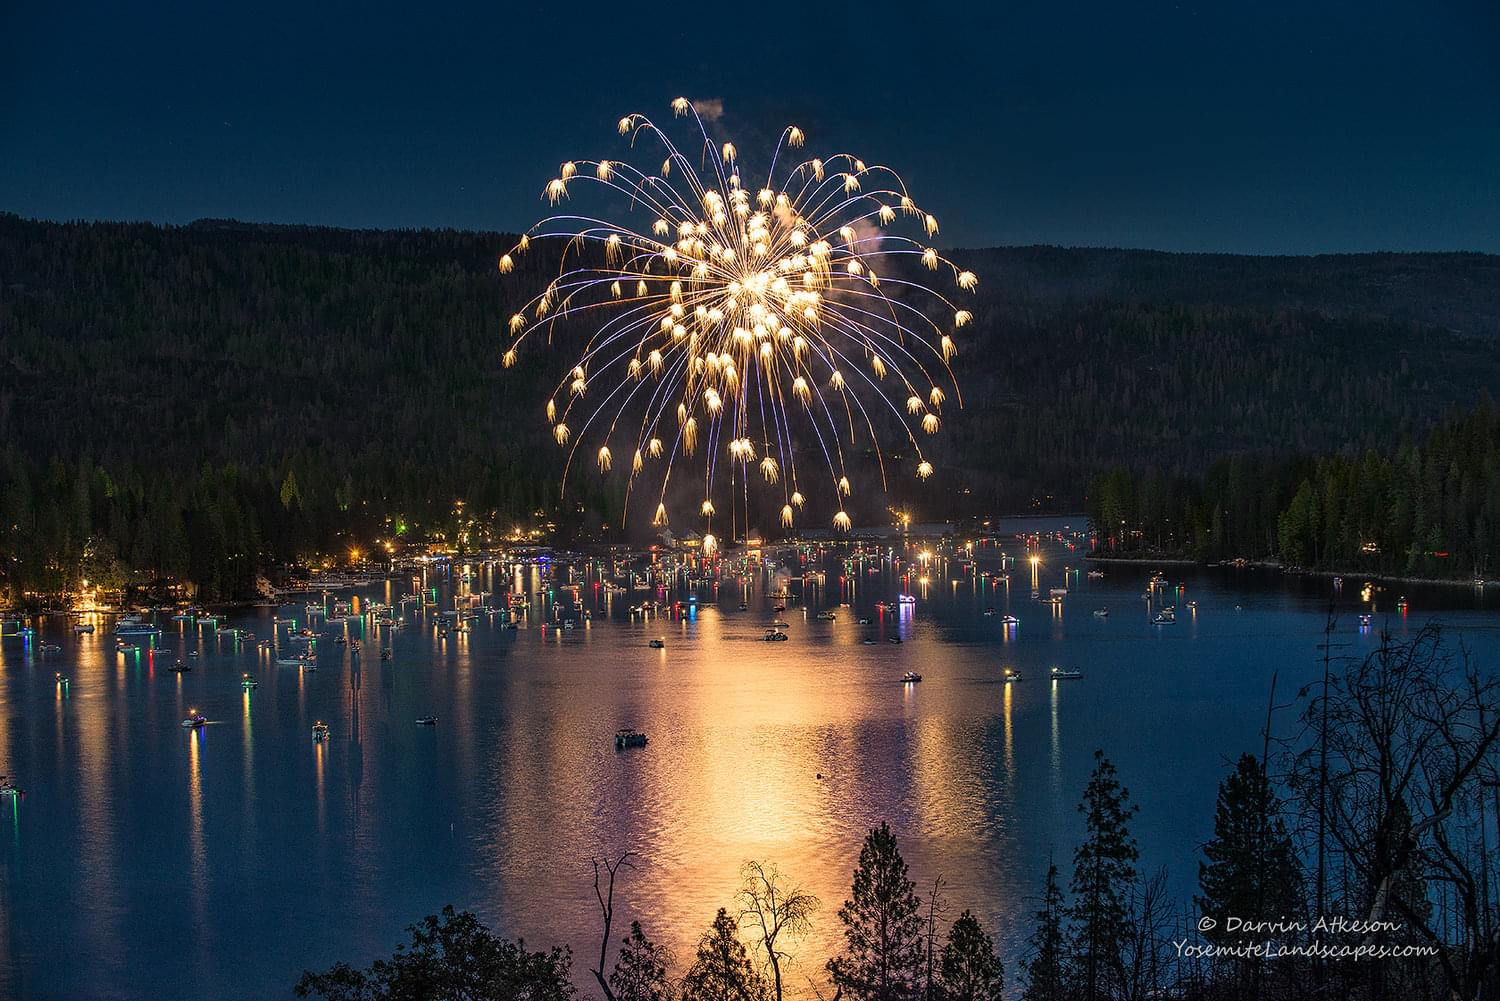 July 4th Fireworks Event at Bass Lake Canceled